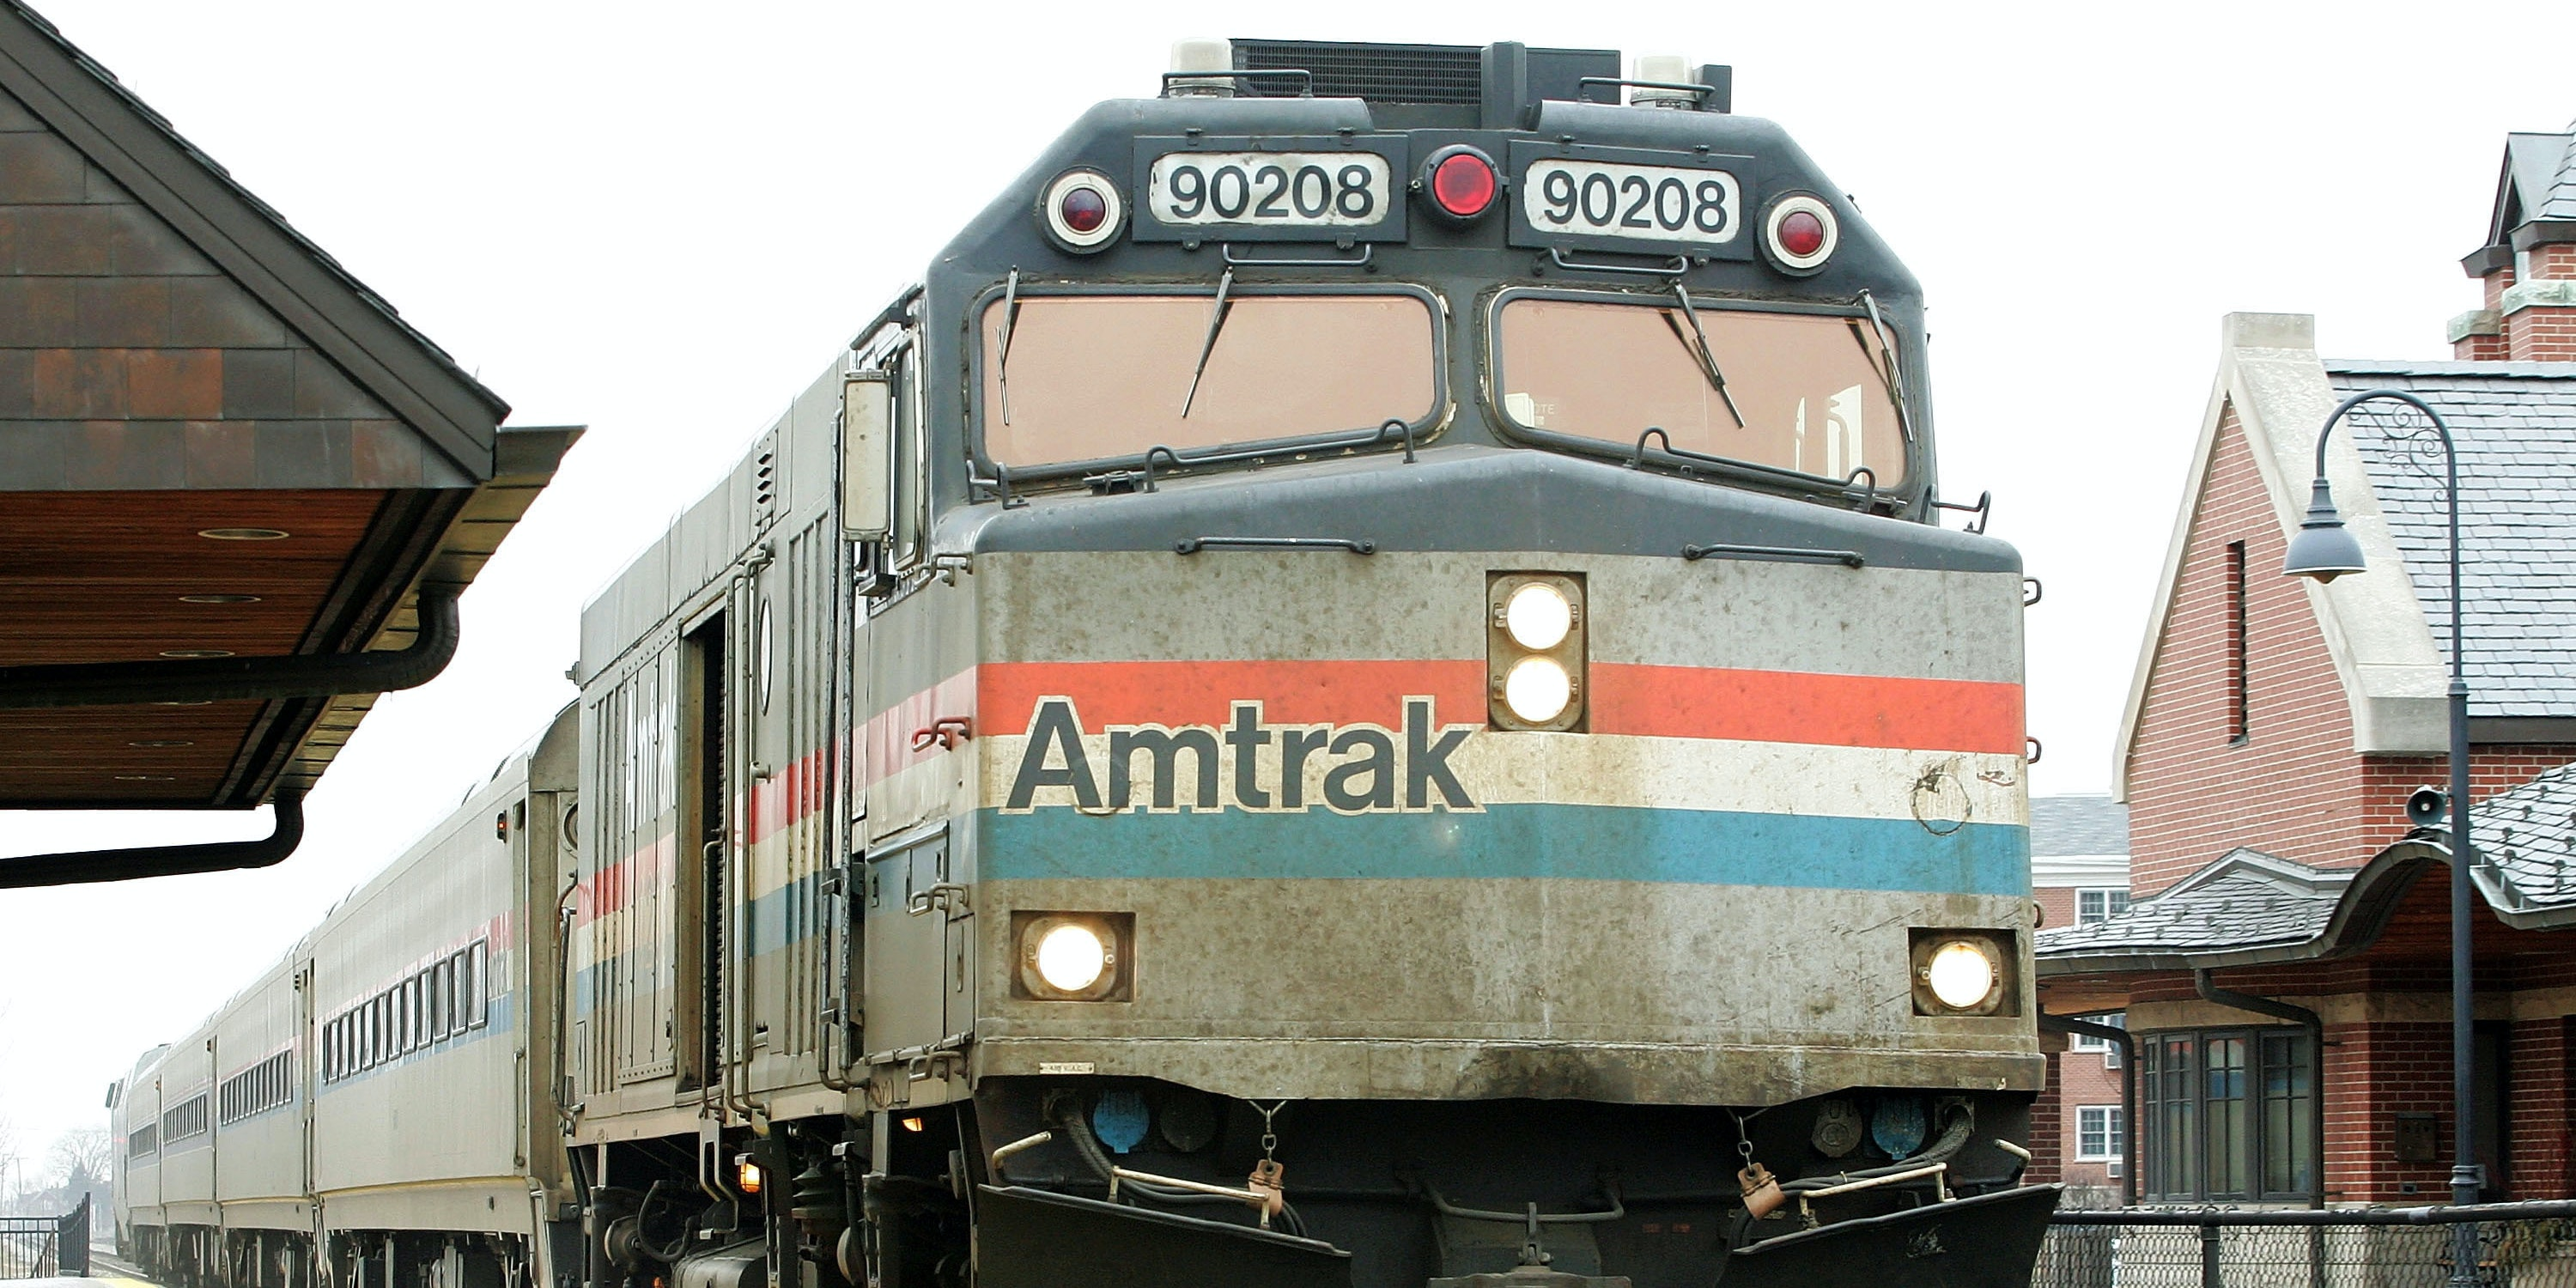 GLENVIEW, IL - FEBRUARY 8: Amtrak's Hiawatha train from Milwaukee, Wisconsin to Chicago arrives at the Amtrak station February 8, 2005 in Glenview, Illinois. U.S. Senator Dick Durbin (D-IL) has said Amtrak's passenger rail service could stop operating and effect 2,000 Illinois jobs if Congress agrees with U.S. President Bush's plan to cut the rail service's federal operating subsidy. Amtrak operates 50 trains daily through the state of Illinois.  (Photo by Tim Boyle/Getty Images)